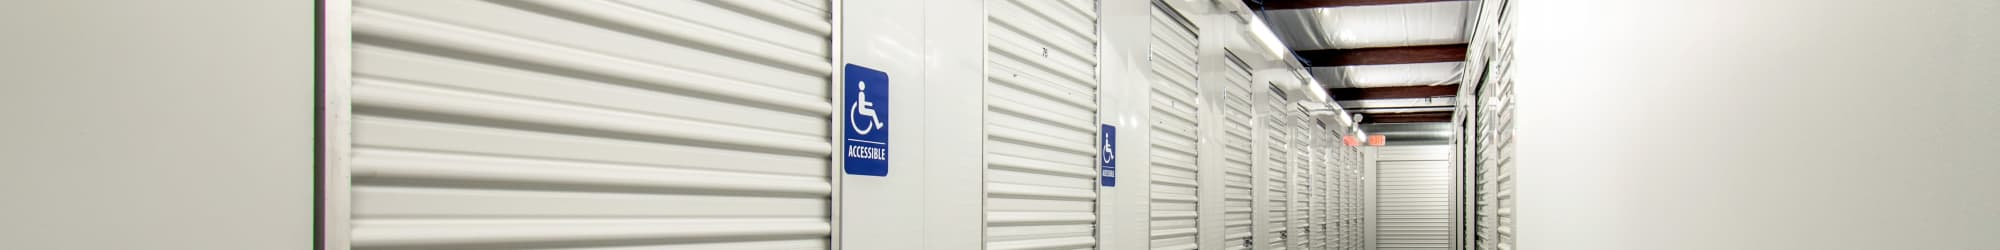 Self storage features at Storage Inns of America in Dayton, Ohio